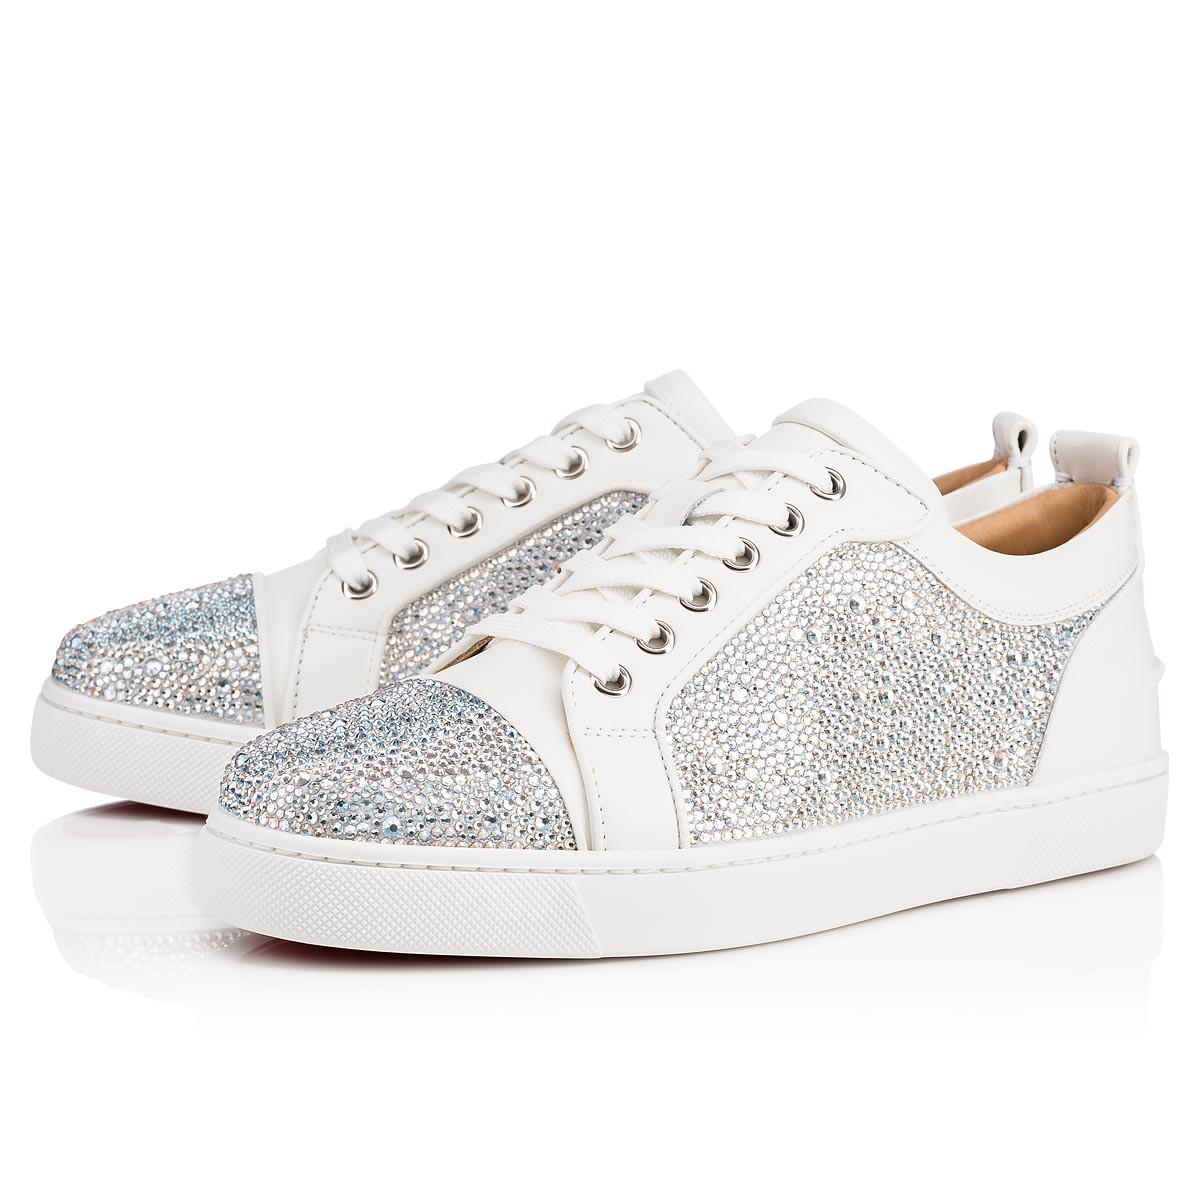 1efbbff48a2 Christian Louboutin Louis Junior Strass Woman Suede/strass Latte ...